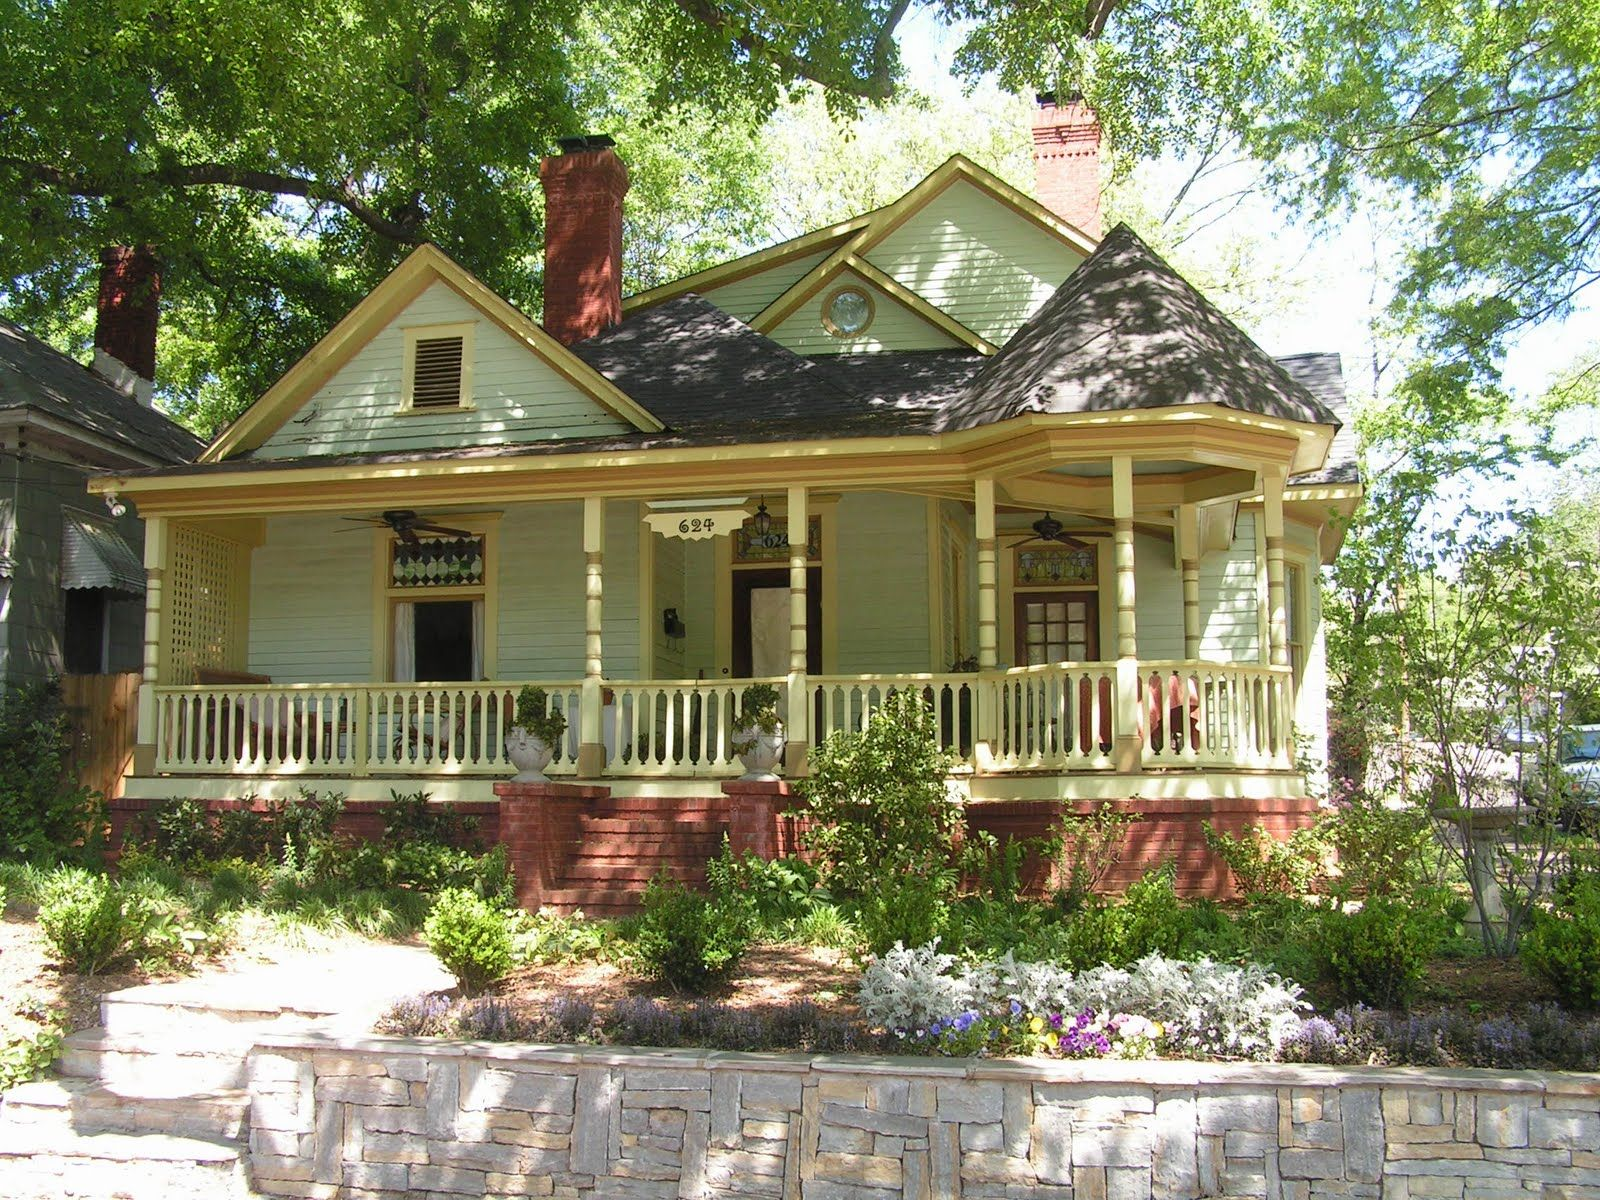 1906 Victorian Bungalow In Grant Park My House Atlanta I Miss You